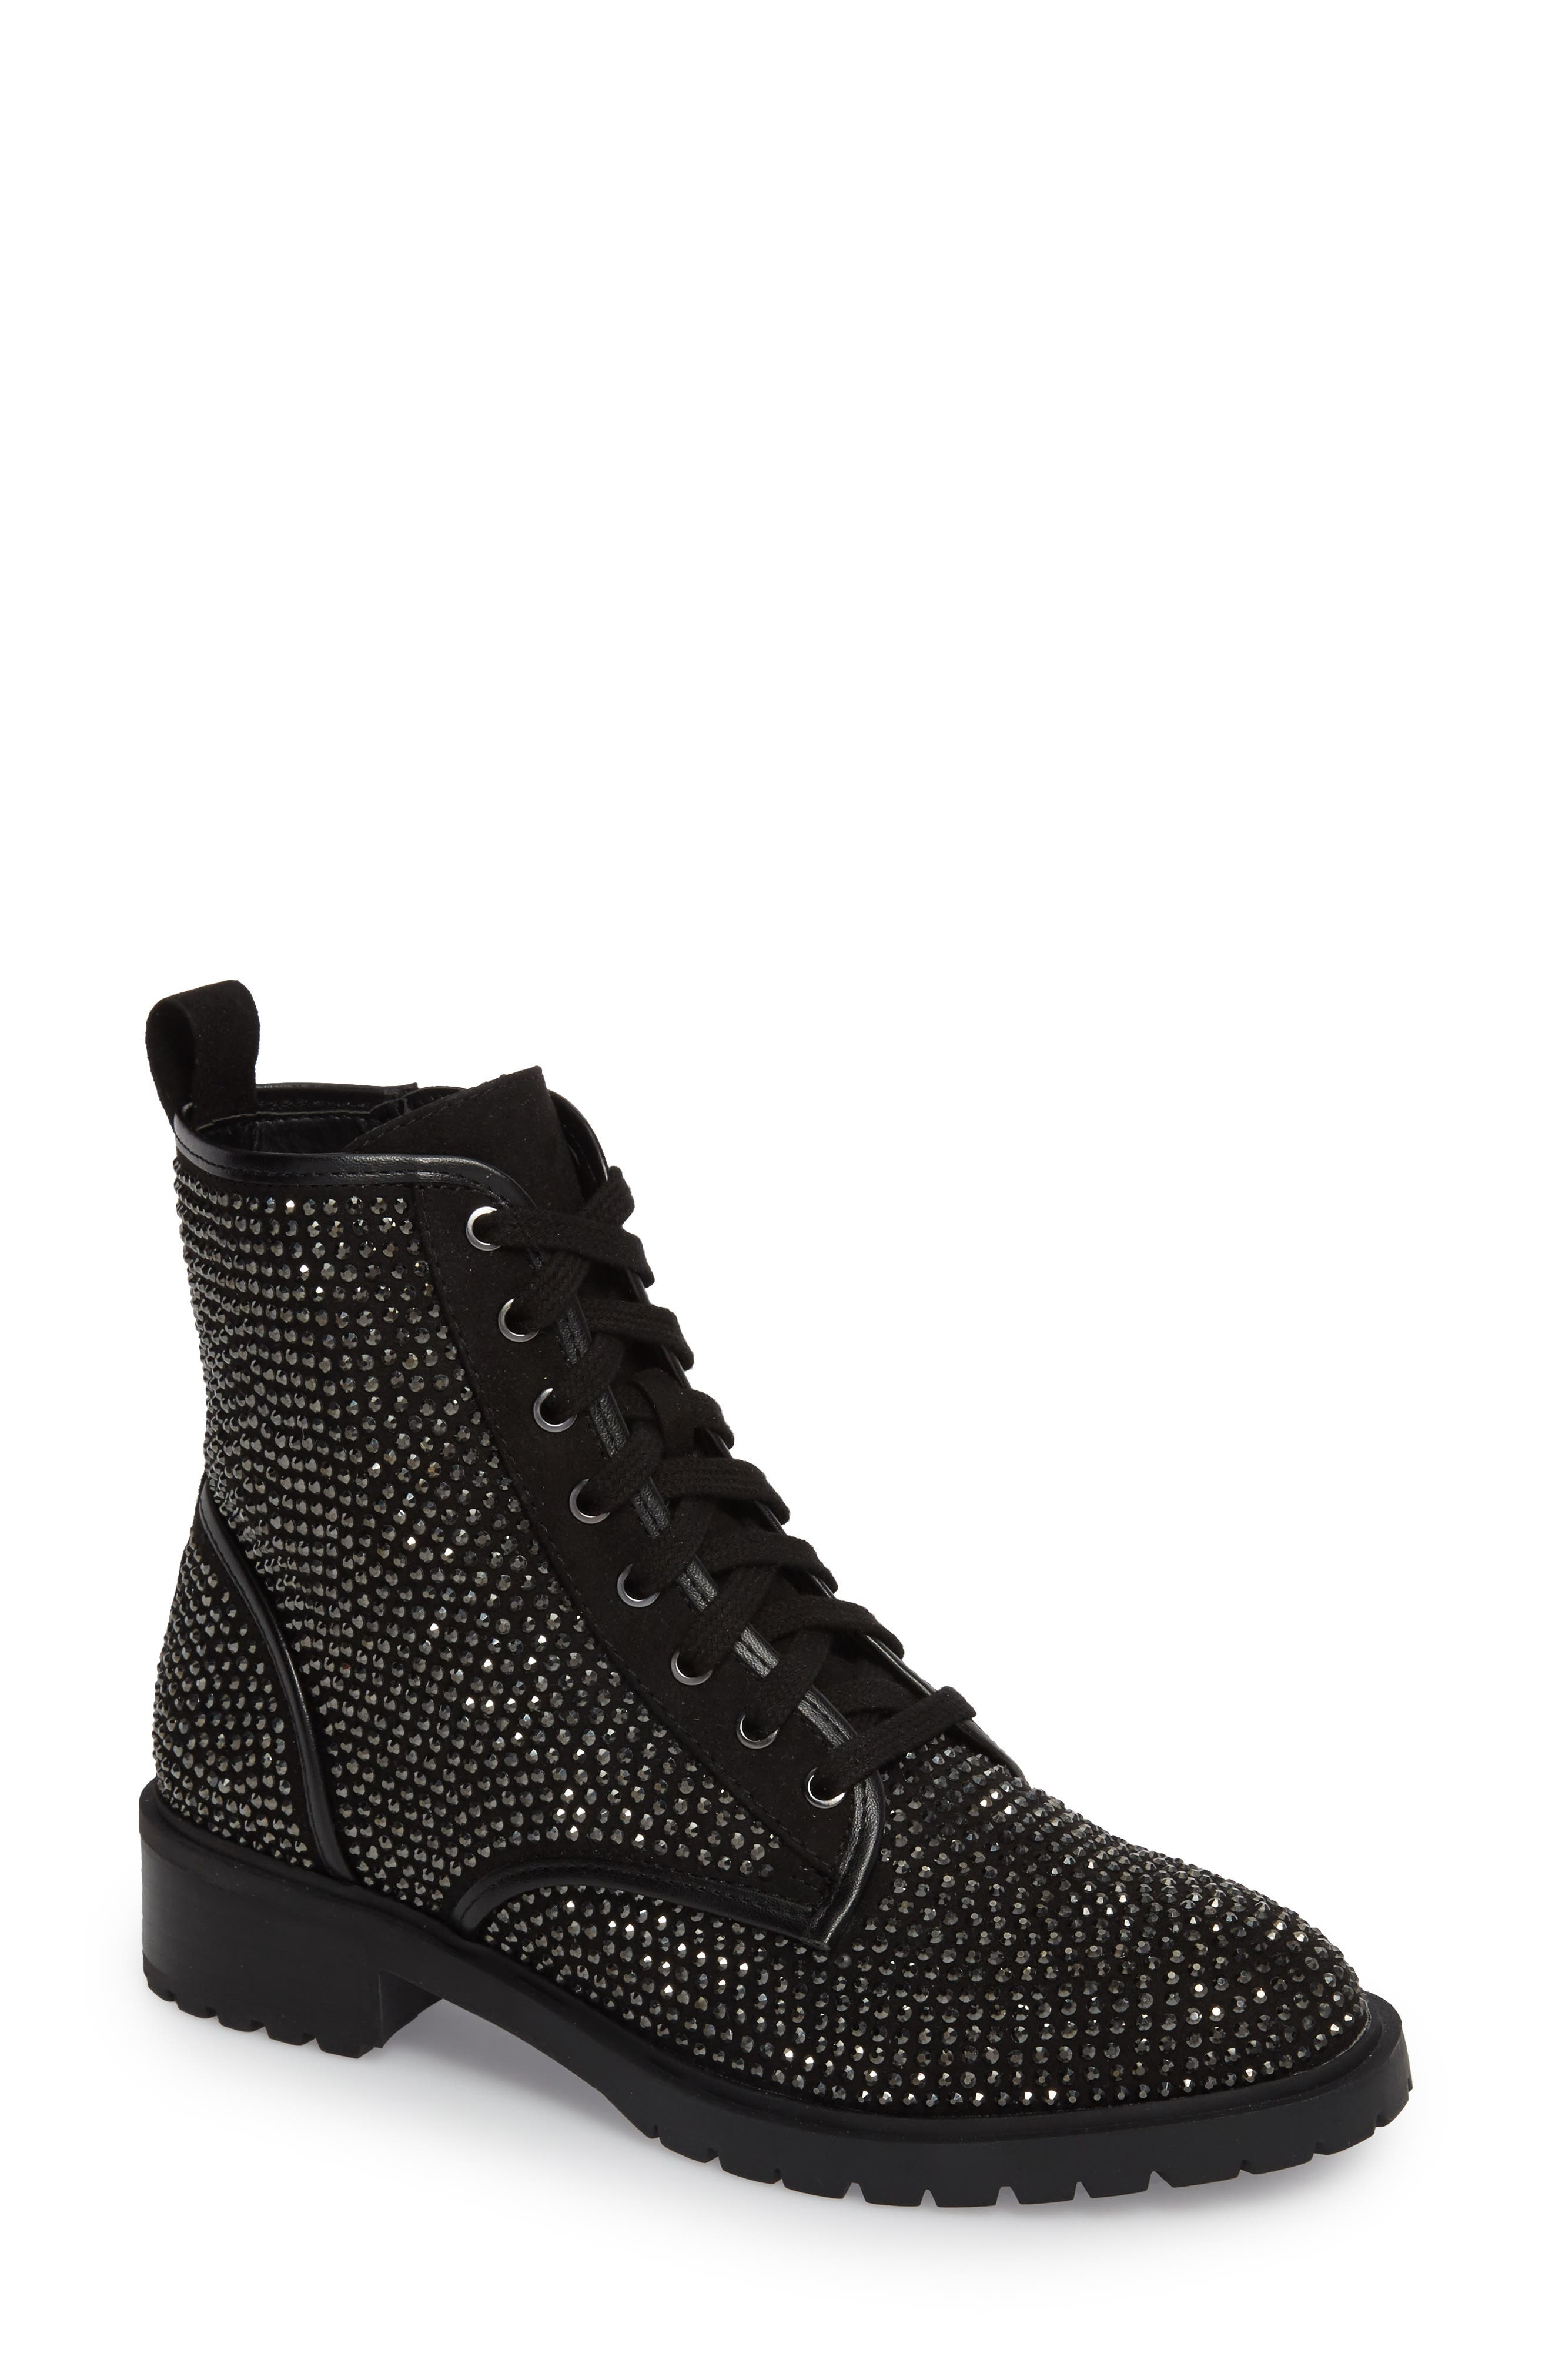 Ozzy Embellished Boot,                             Main thumbnail 1, color,                             Black Multi Suede